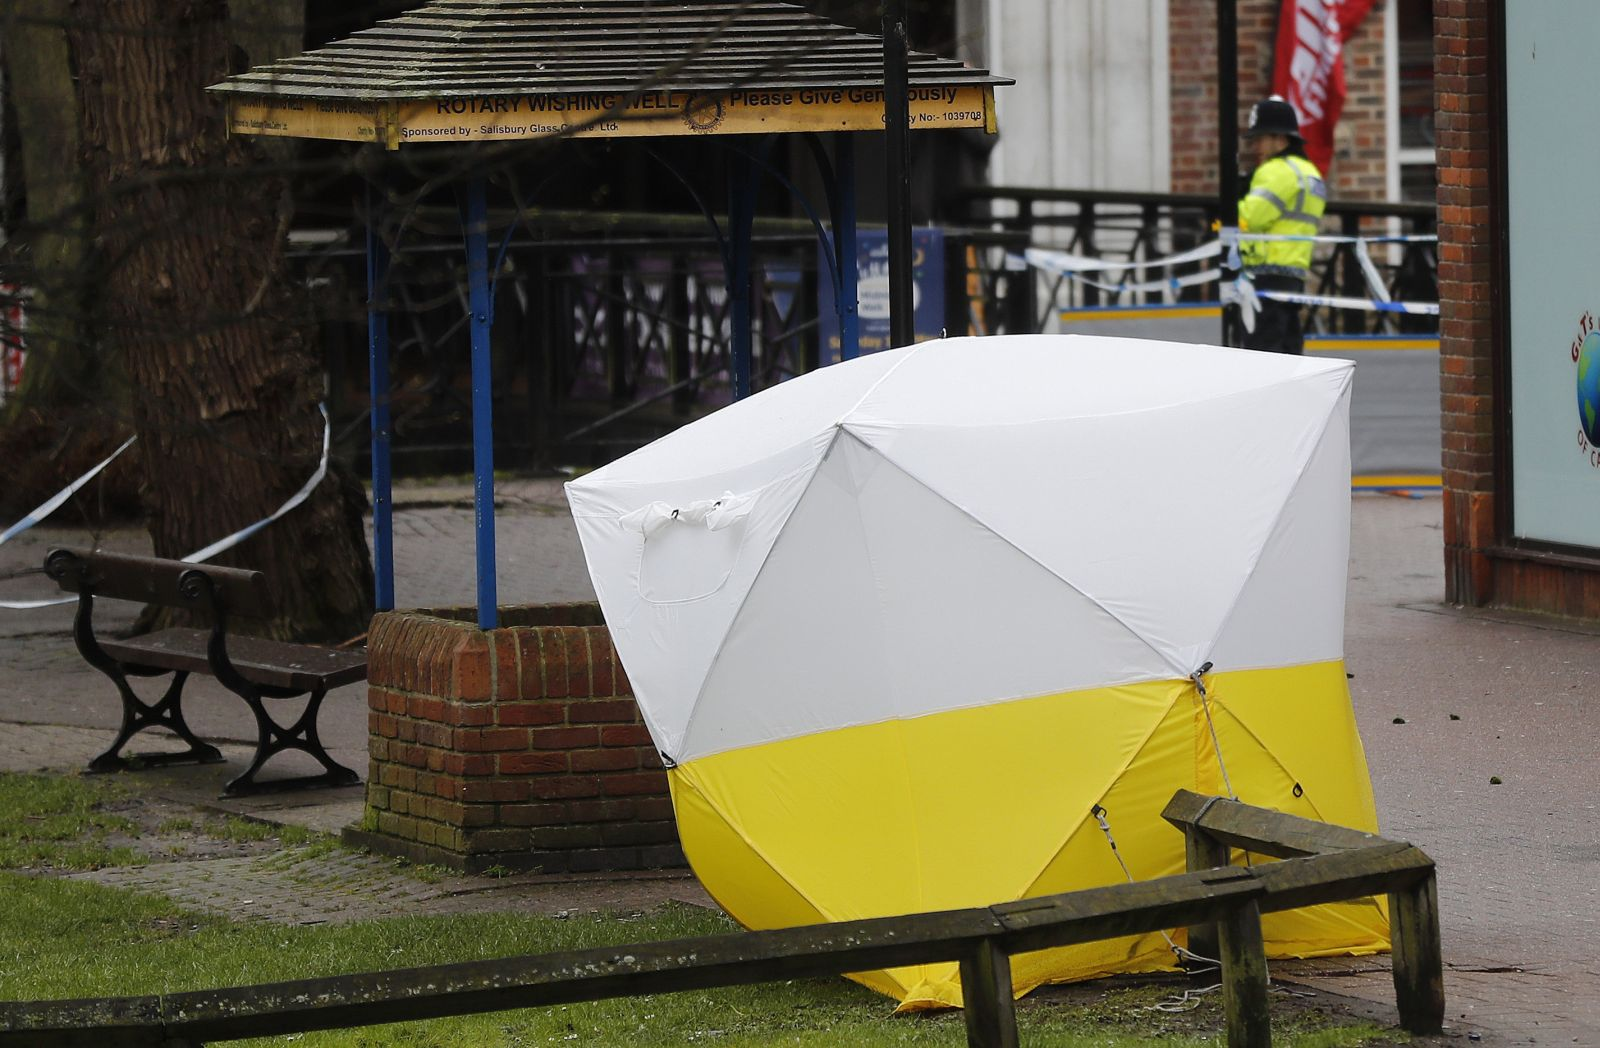 A police tent covers the the spot where former Russian double agent Sergei Skripal and his daughter Yulia were found critically ill following exposure to a nerve agent substance' in Salisbury, England, Monday, March 12, 2018. (AP Photo/Frank Augstein)